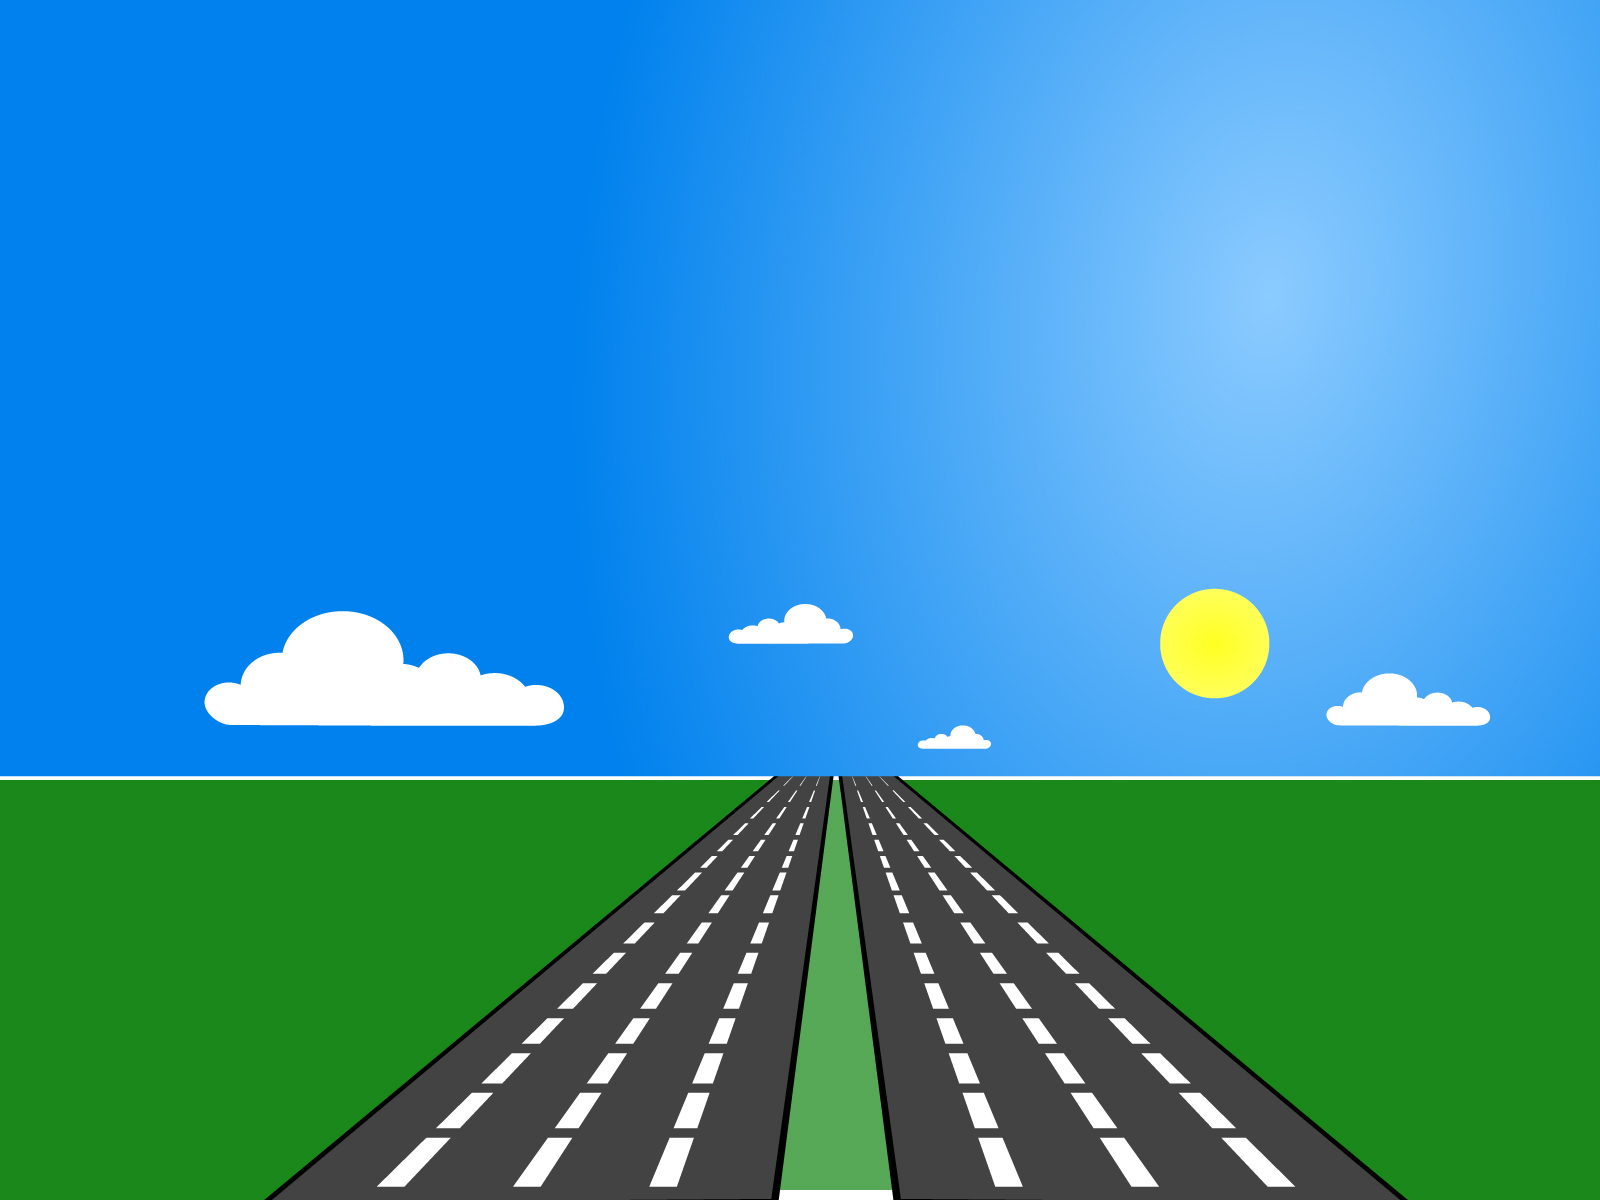 Road Transportation PPT Backgrounds - Blue, Green ...